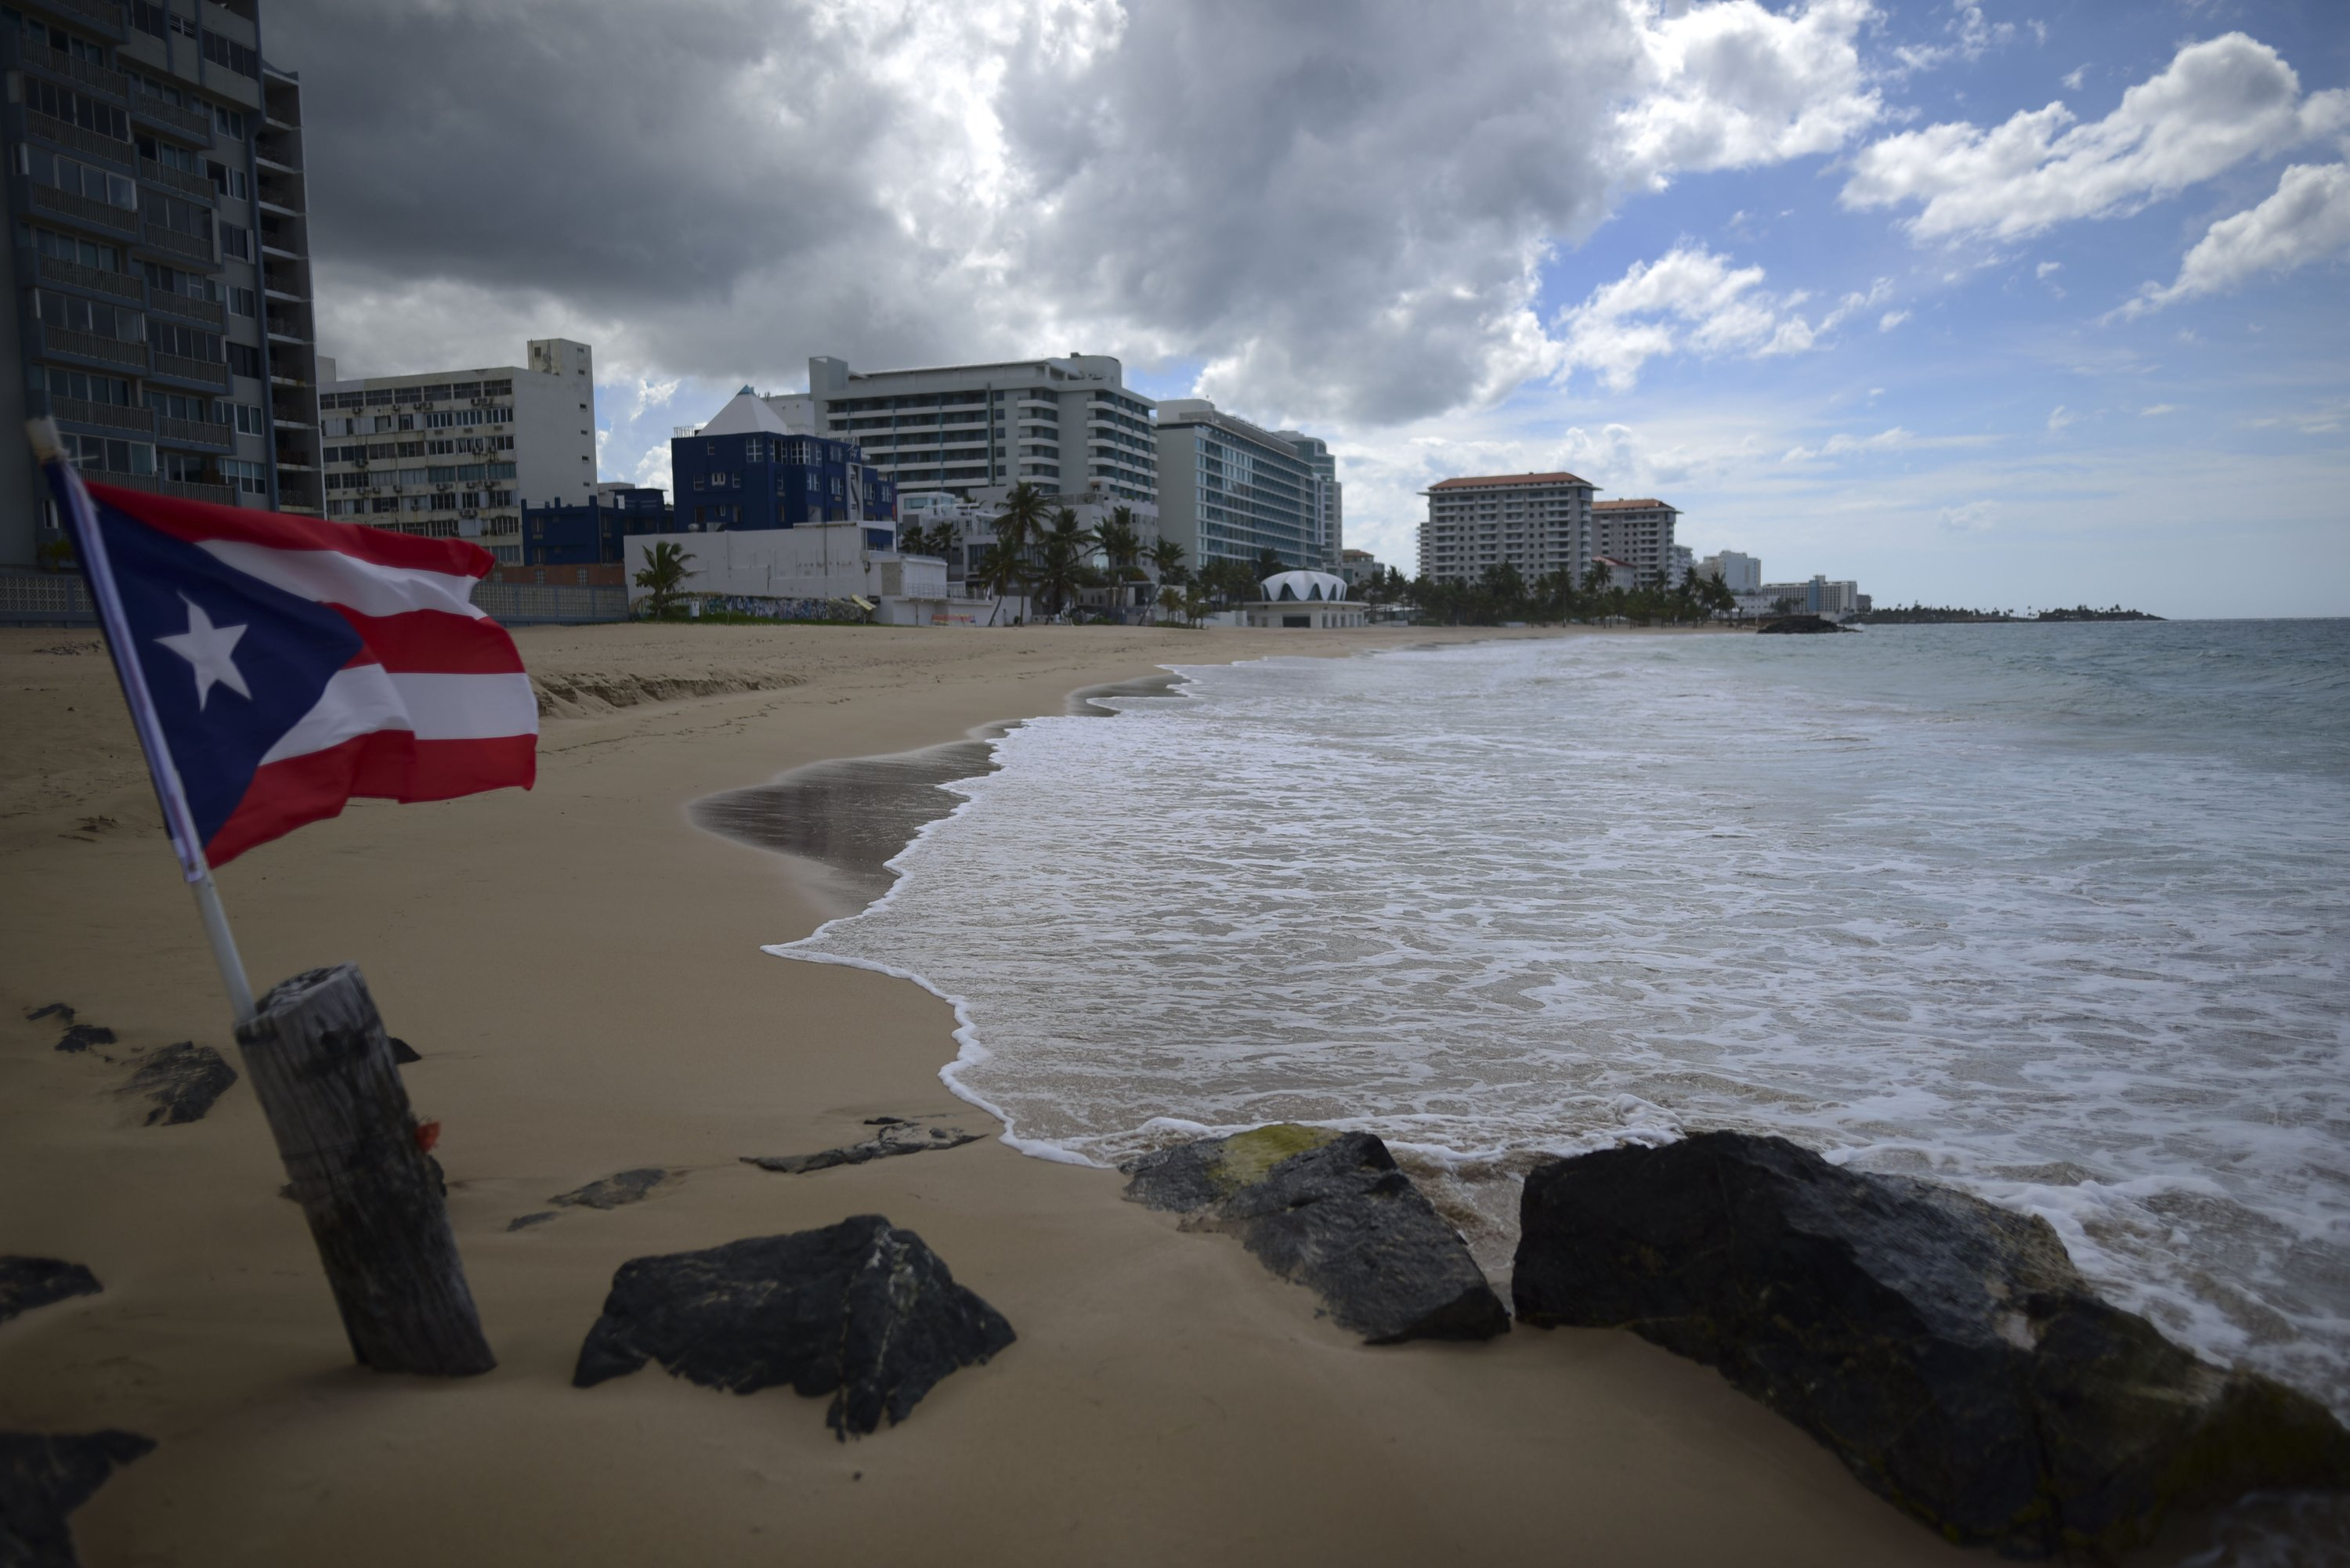 Puerto Rico to shutter schools amid spike in COVID-19 cases